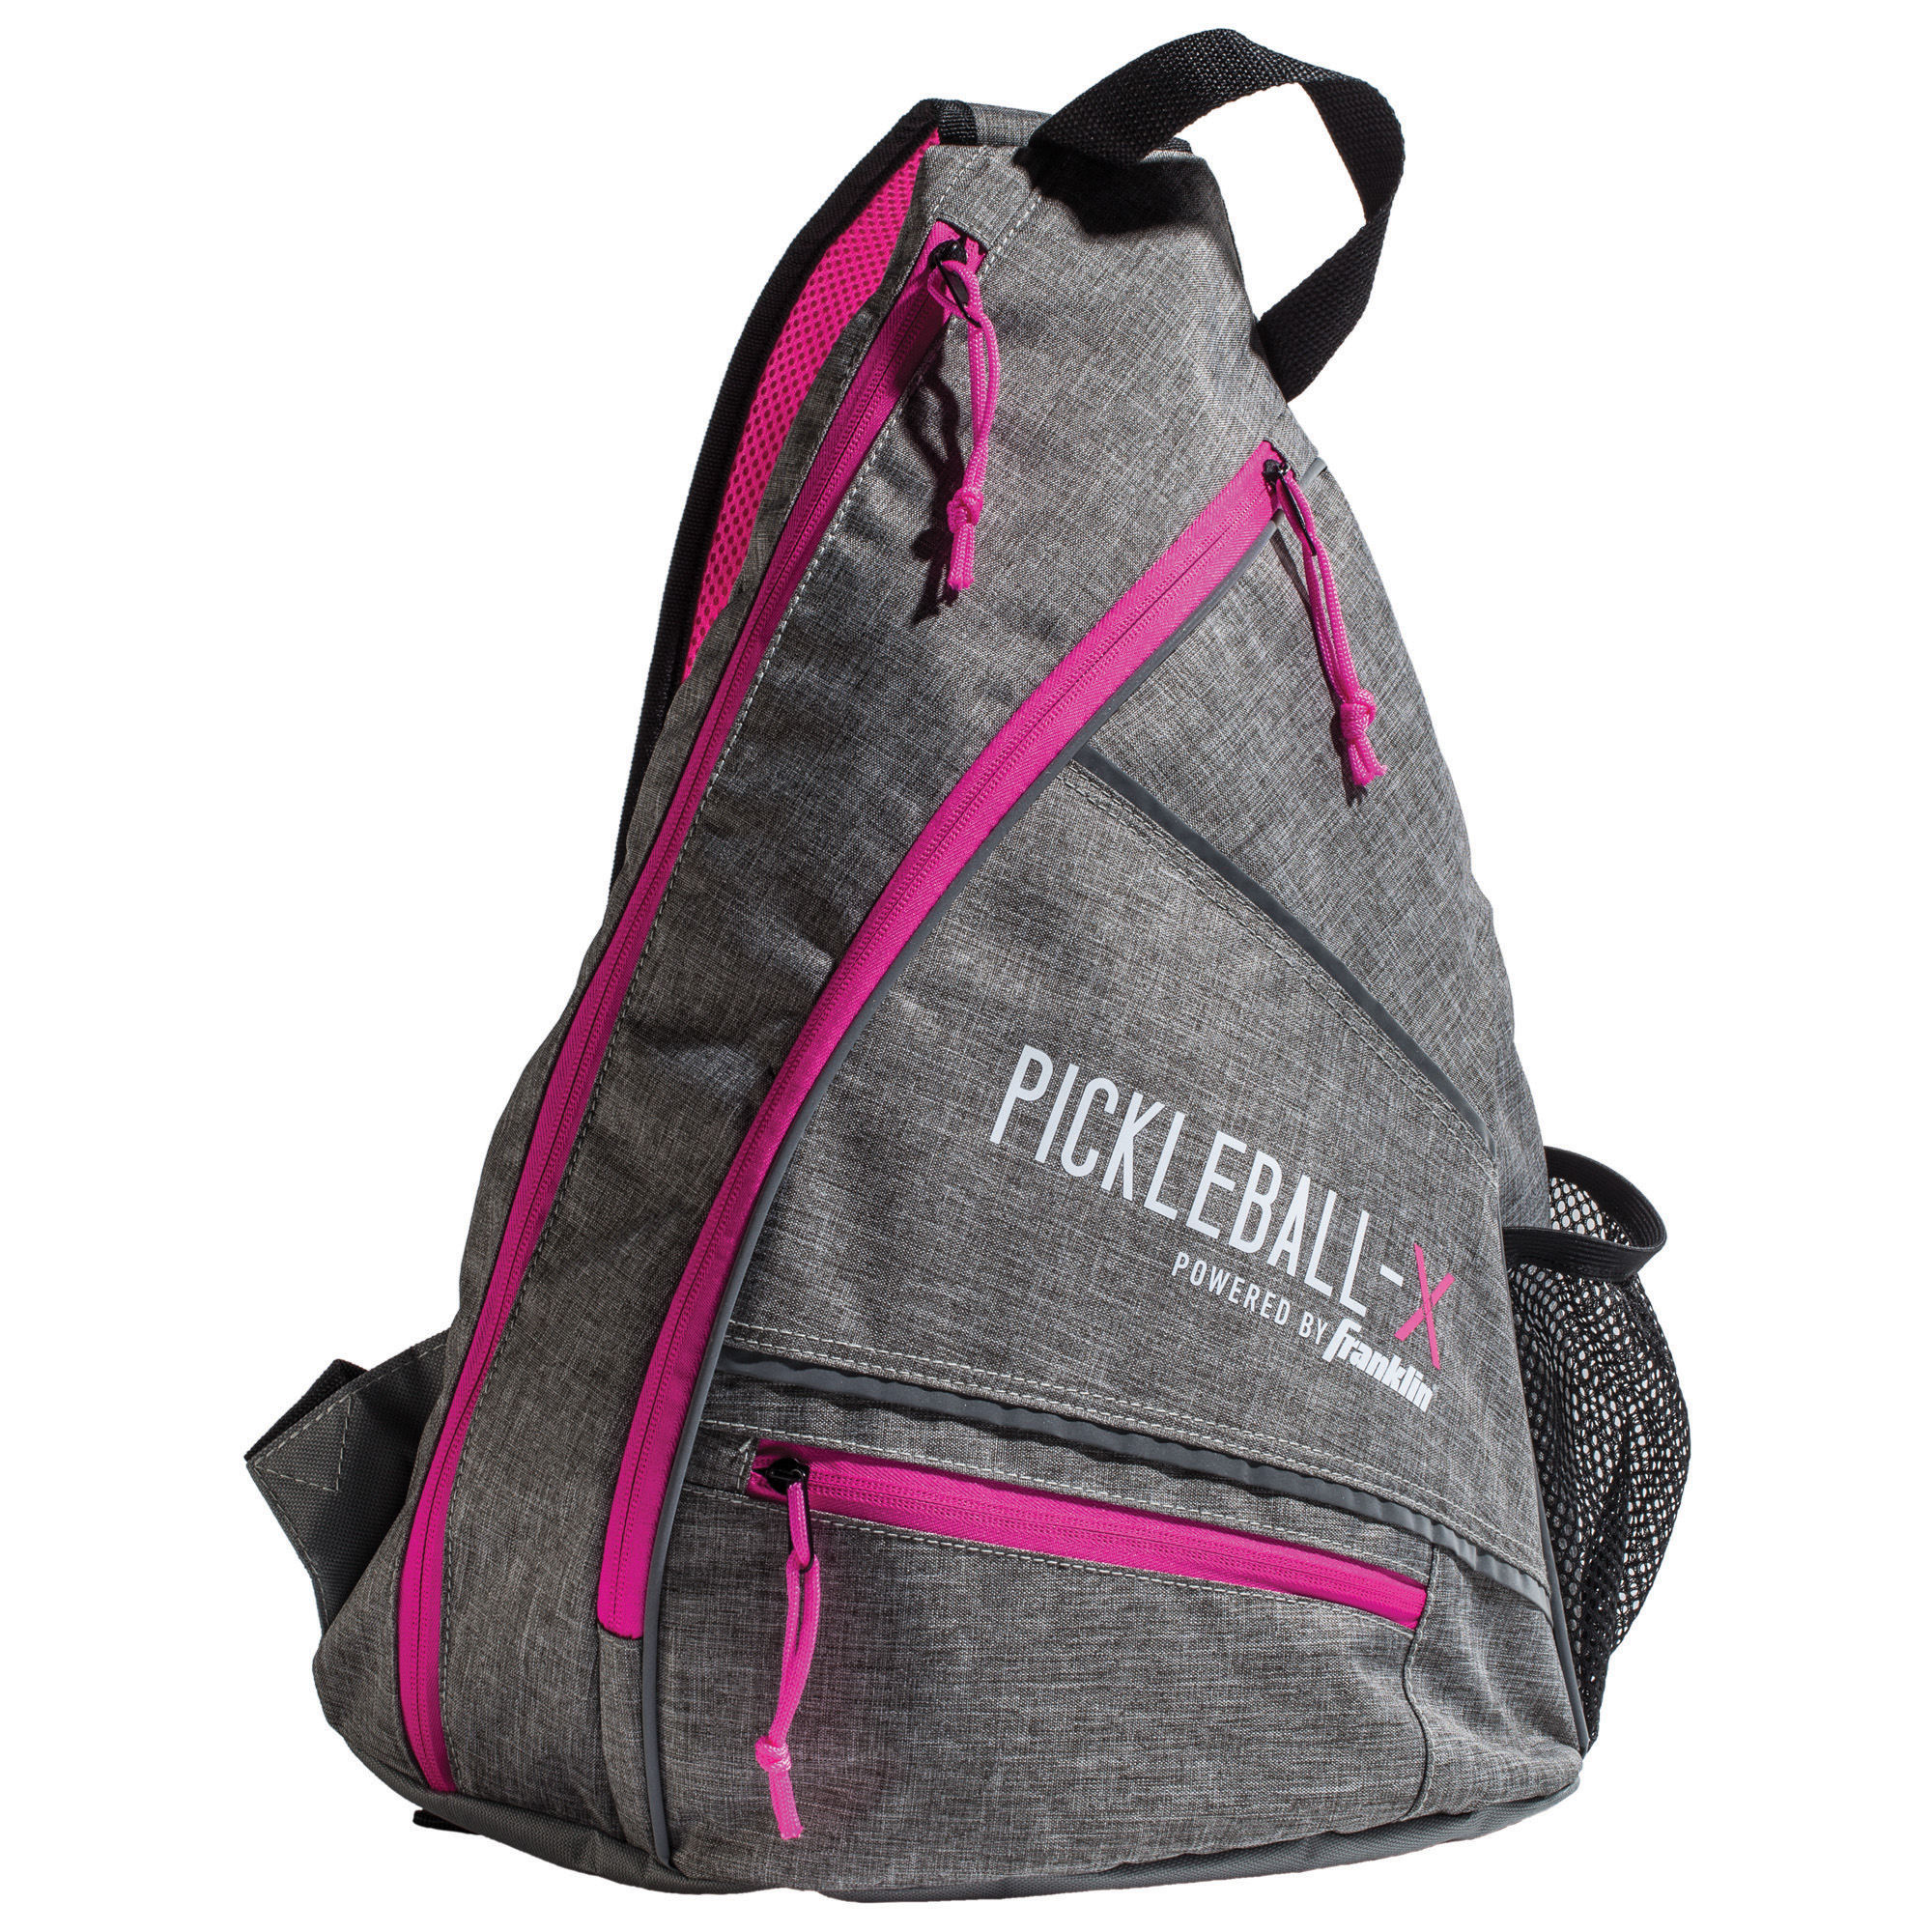 Pickleball-X Elite Performance Sling Bag - Official Bag of the US OPEN (Gray/Pink)